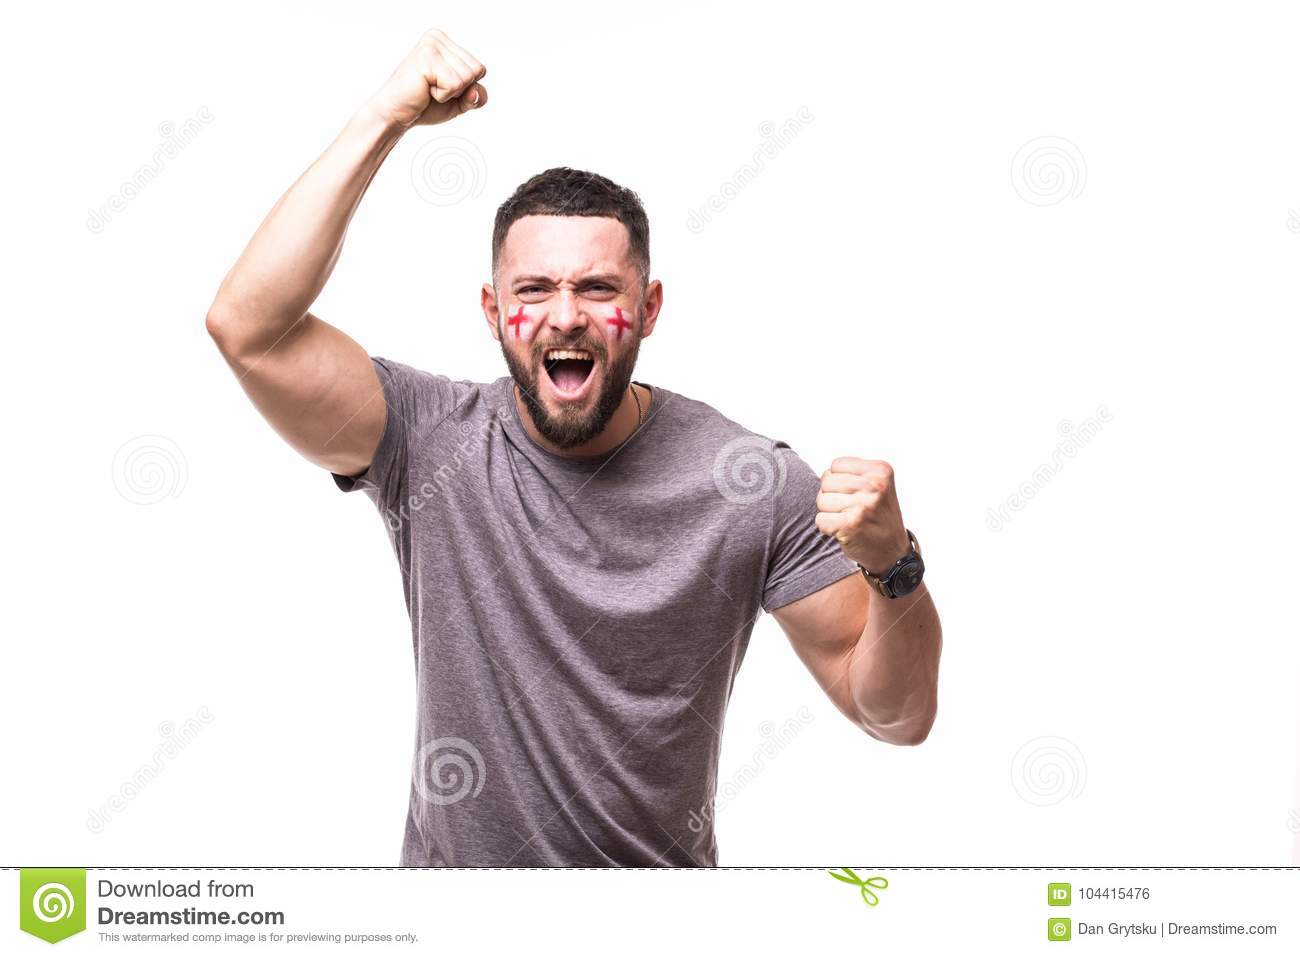 England win. Victory, happy and goal scream emotions of England football fan in game support of England national team on white bac